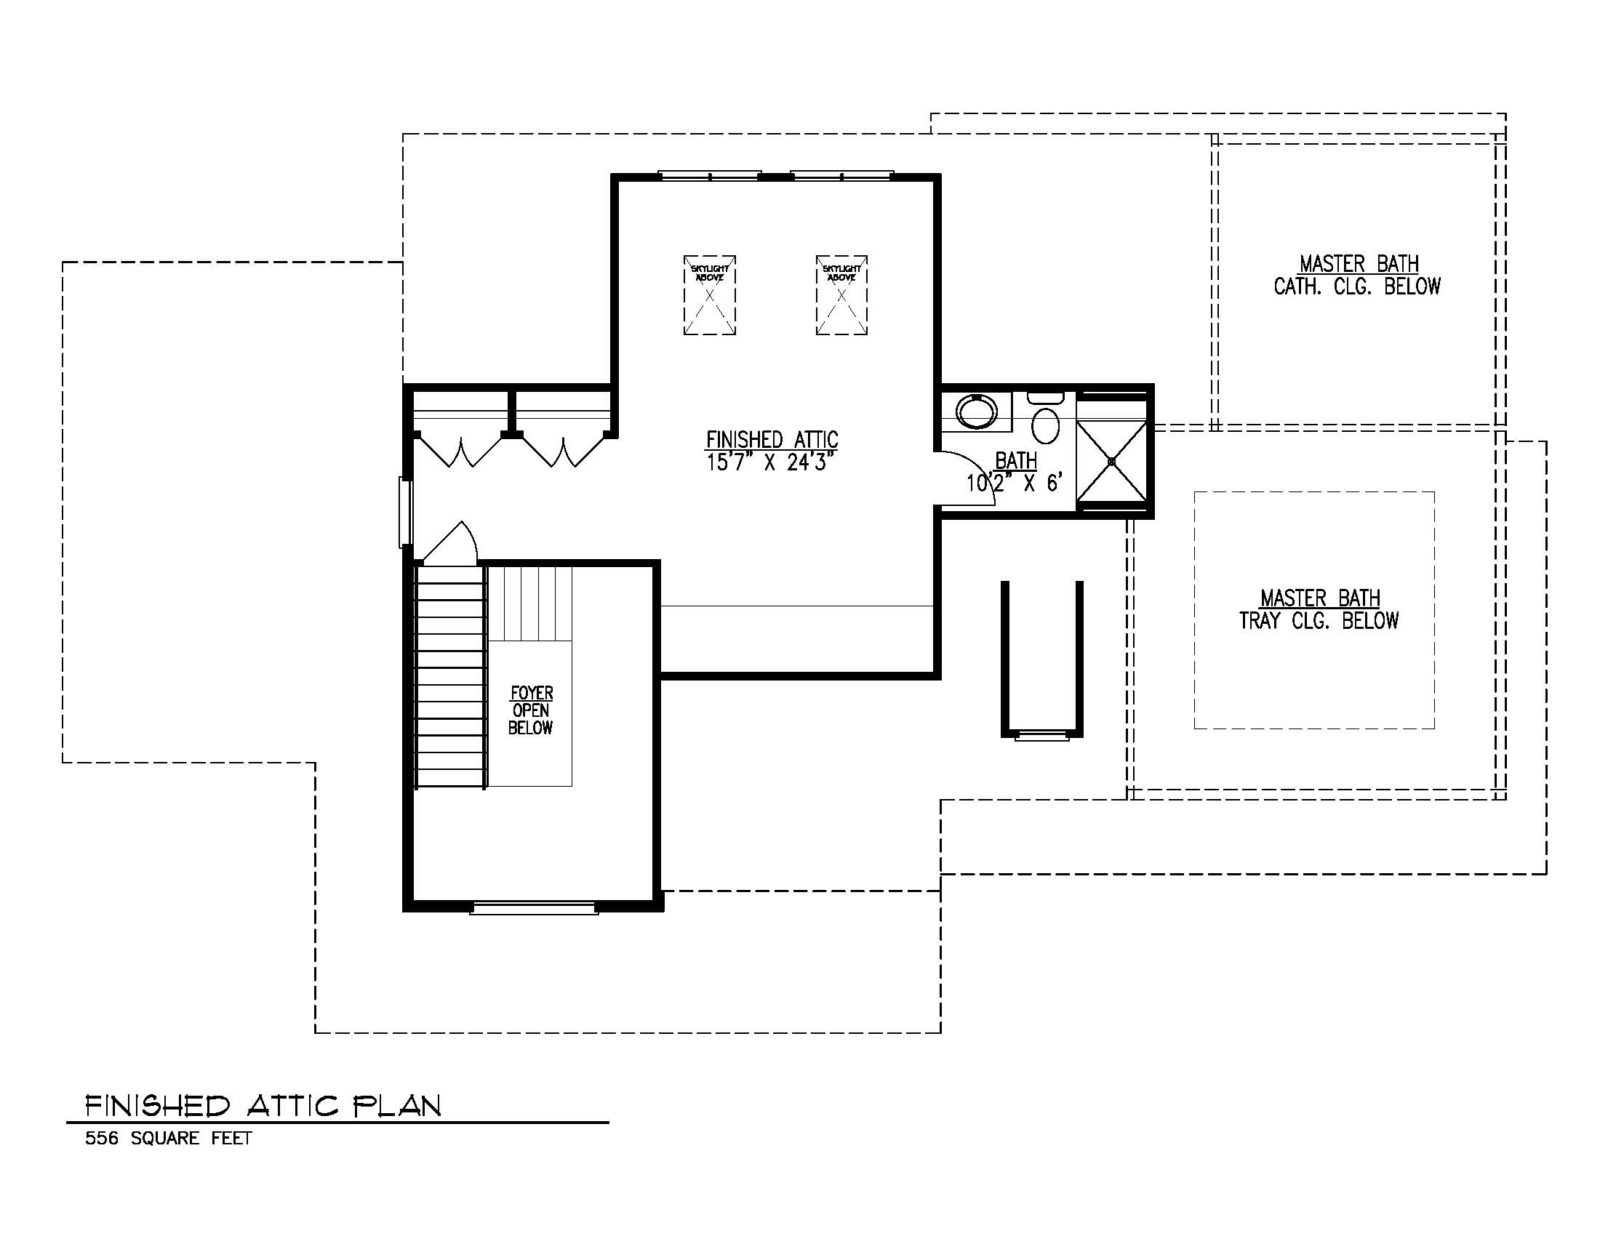 131-Barchester-Finished-Attic-Plan